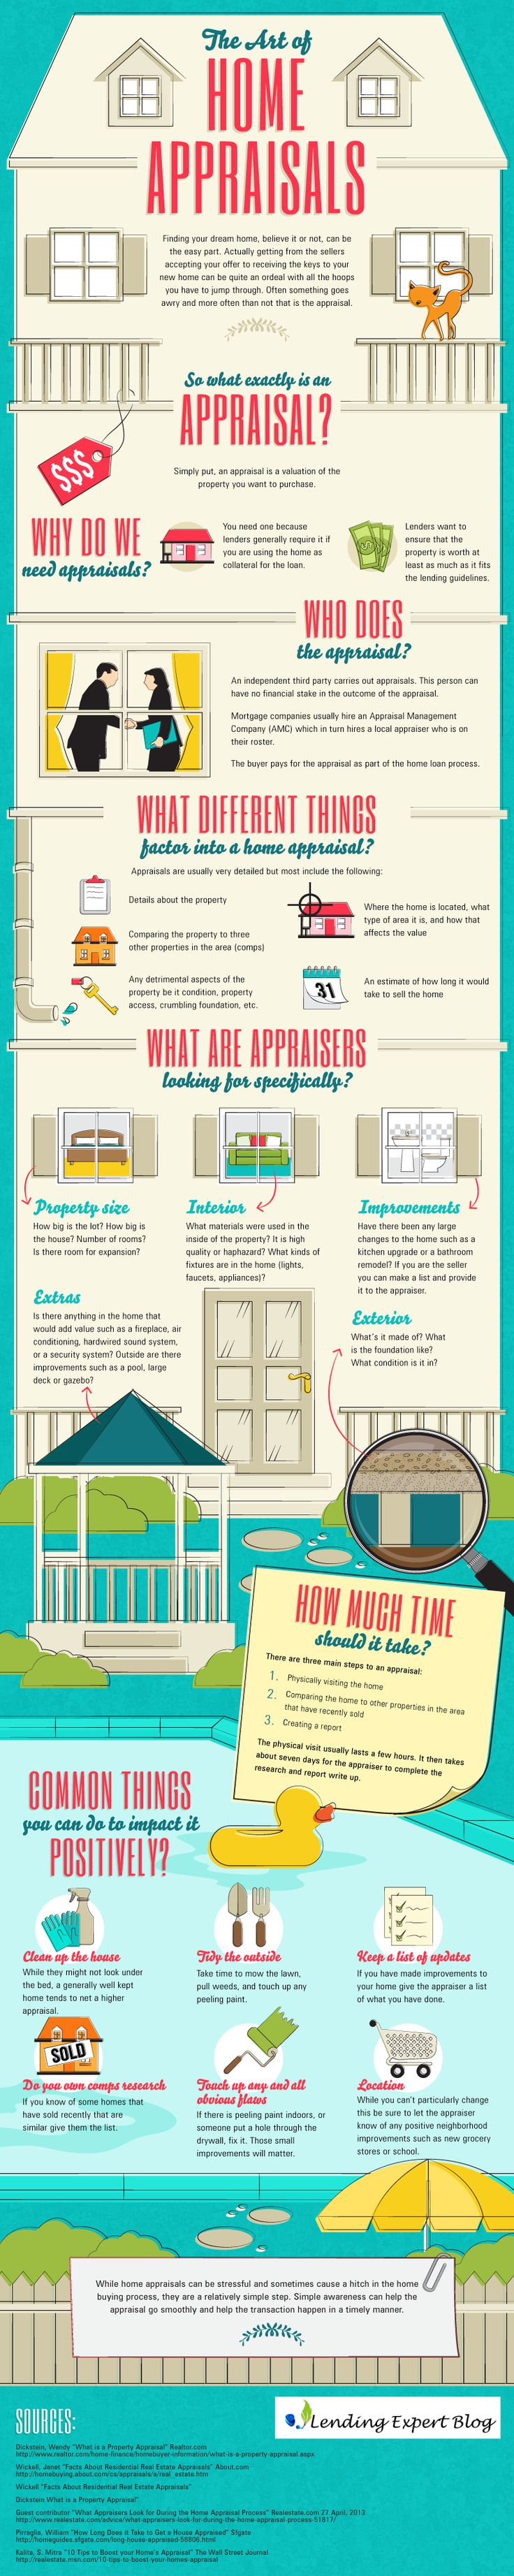 what_is_an_appraisal_3688